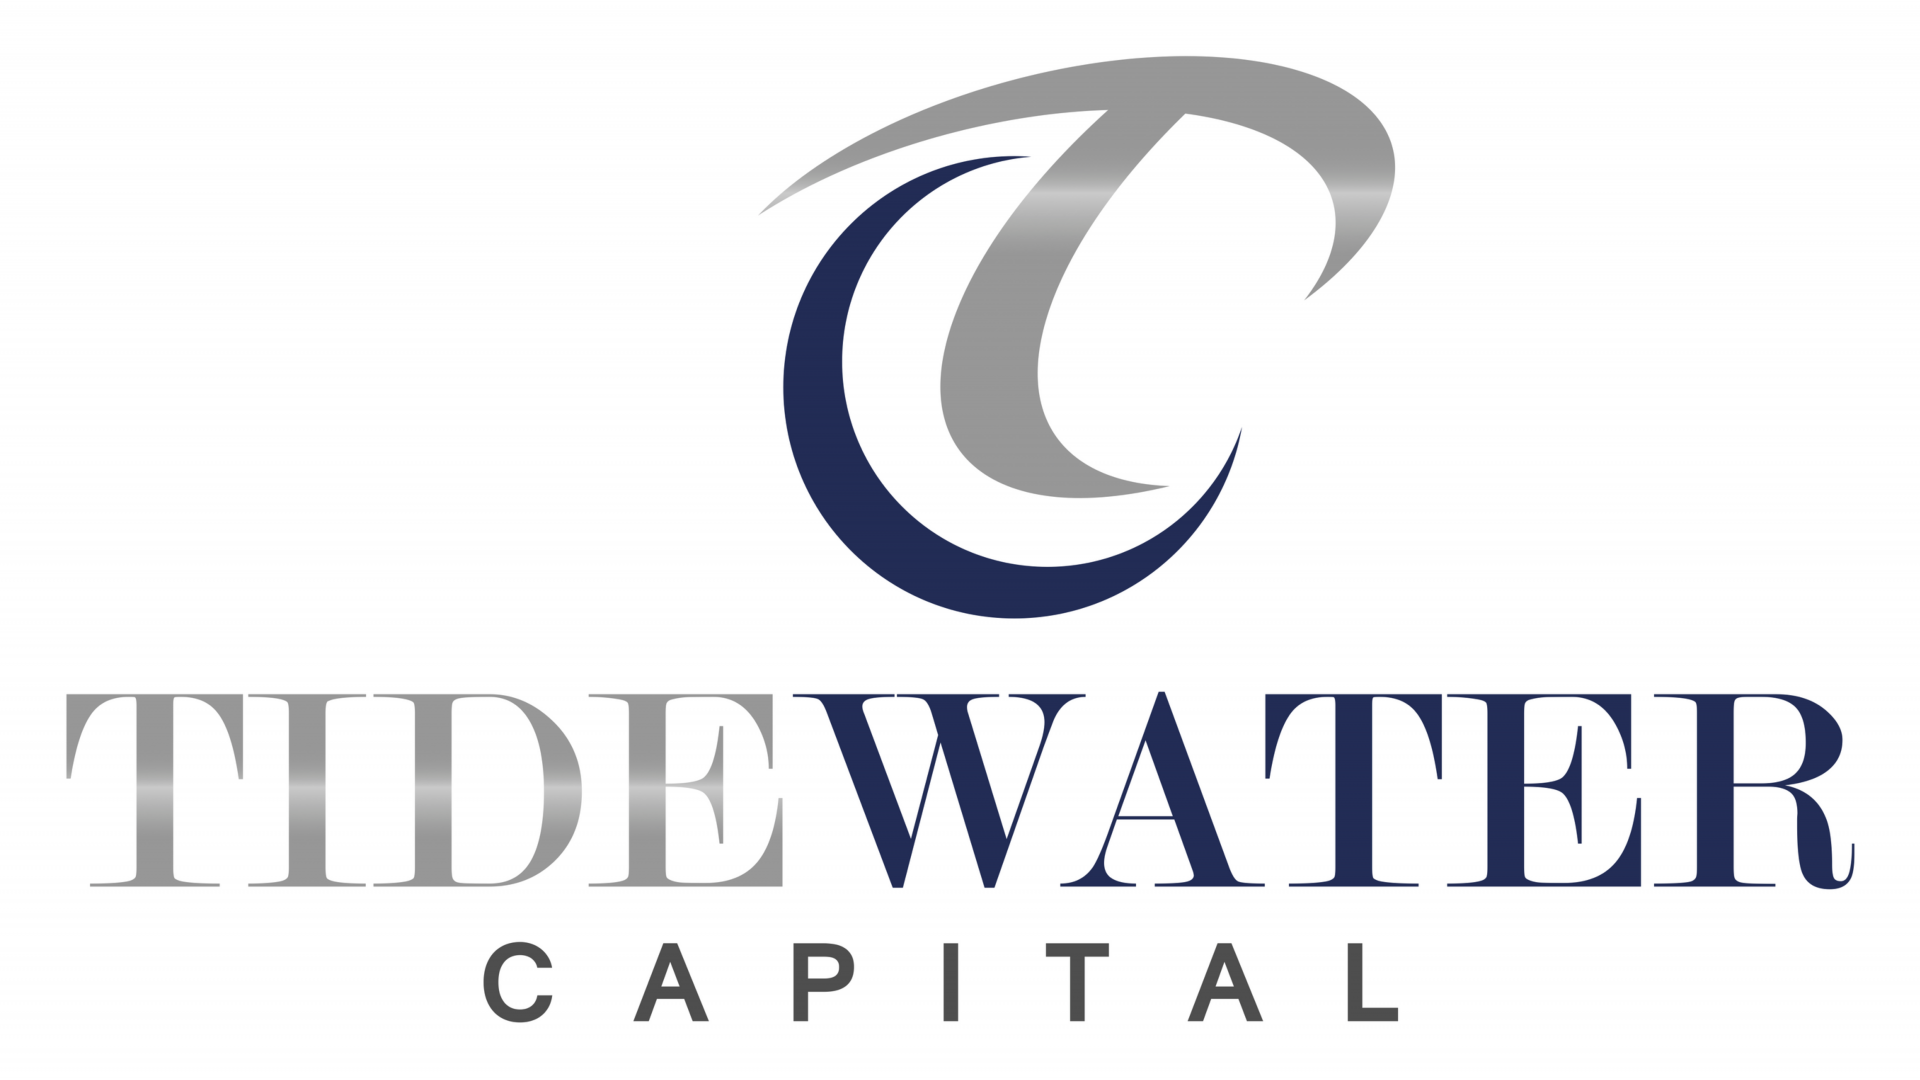 Tidewater Capital logo